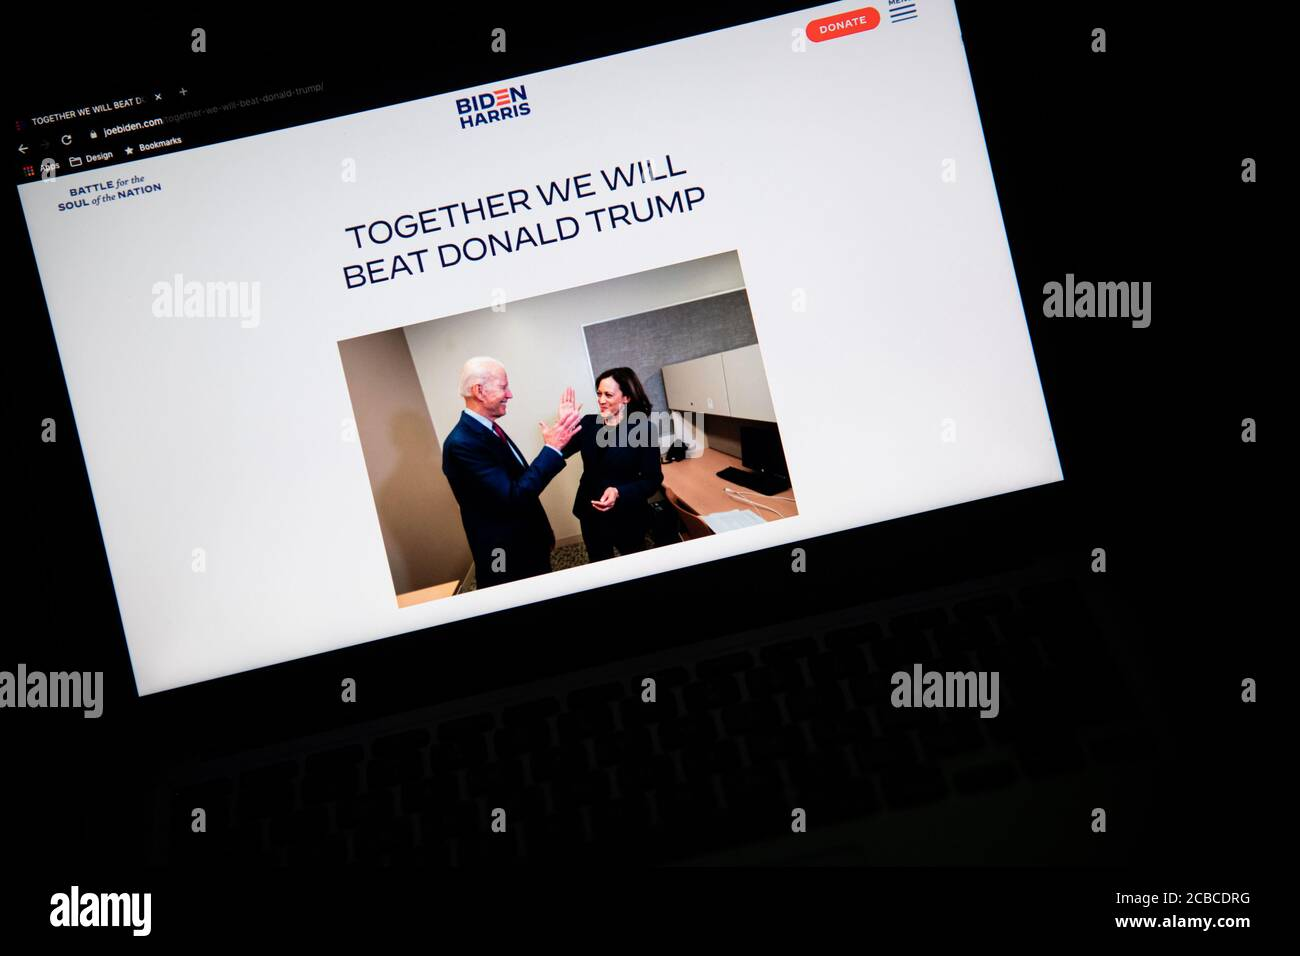 Washington Usa 12th Aug 2020 A Photo Illustration Of A Laptop Computer Screen Shows A Biden Harris Campaign Website Page Prior To A Livestream Event Of The Announcement Of Sen Kamala Harris As